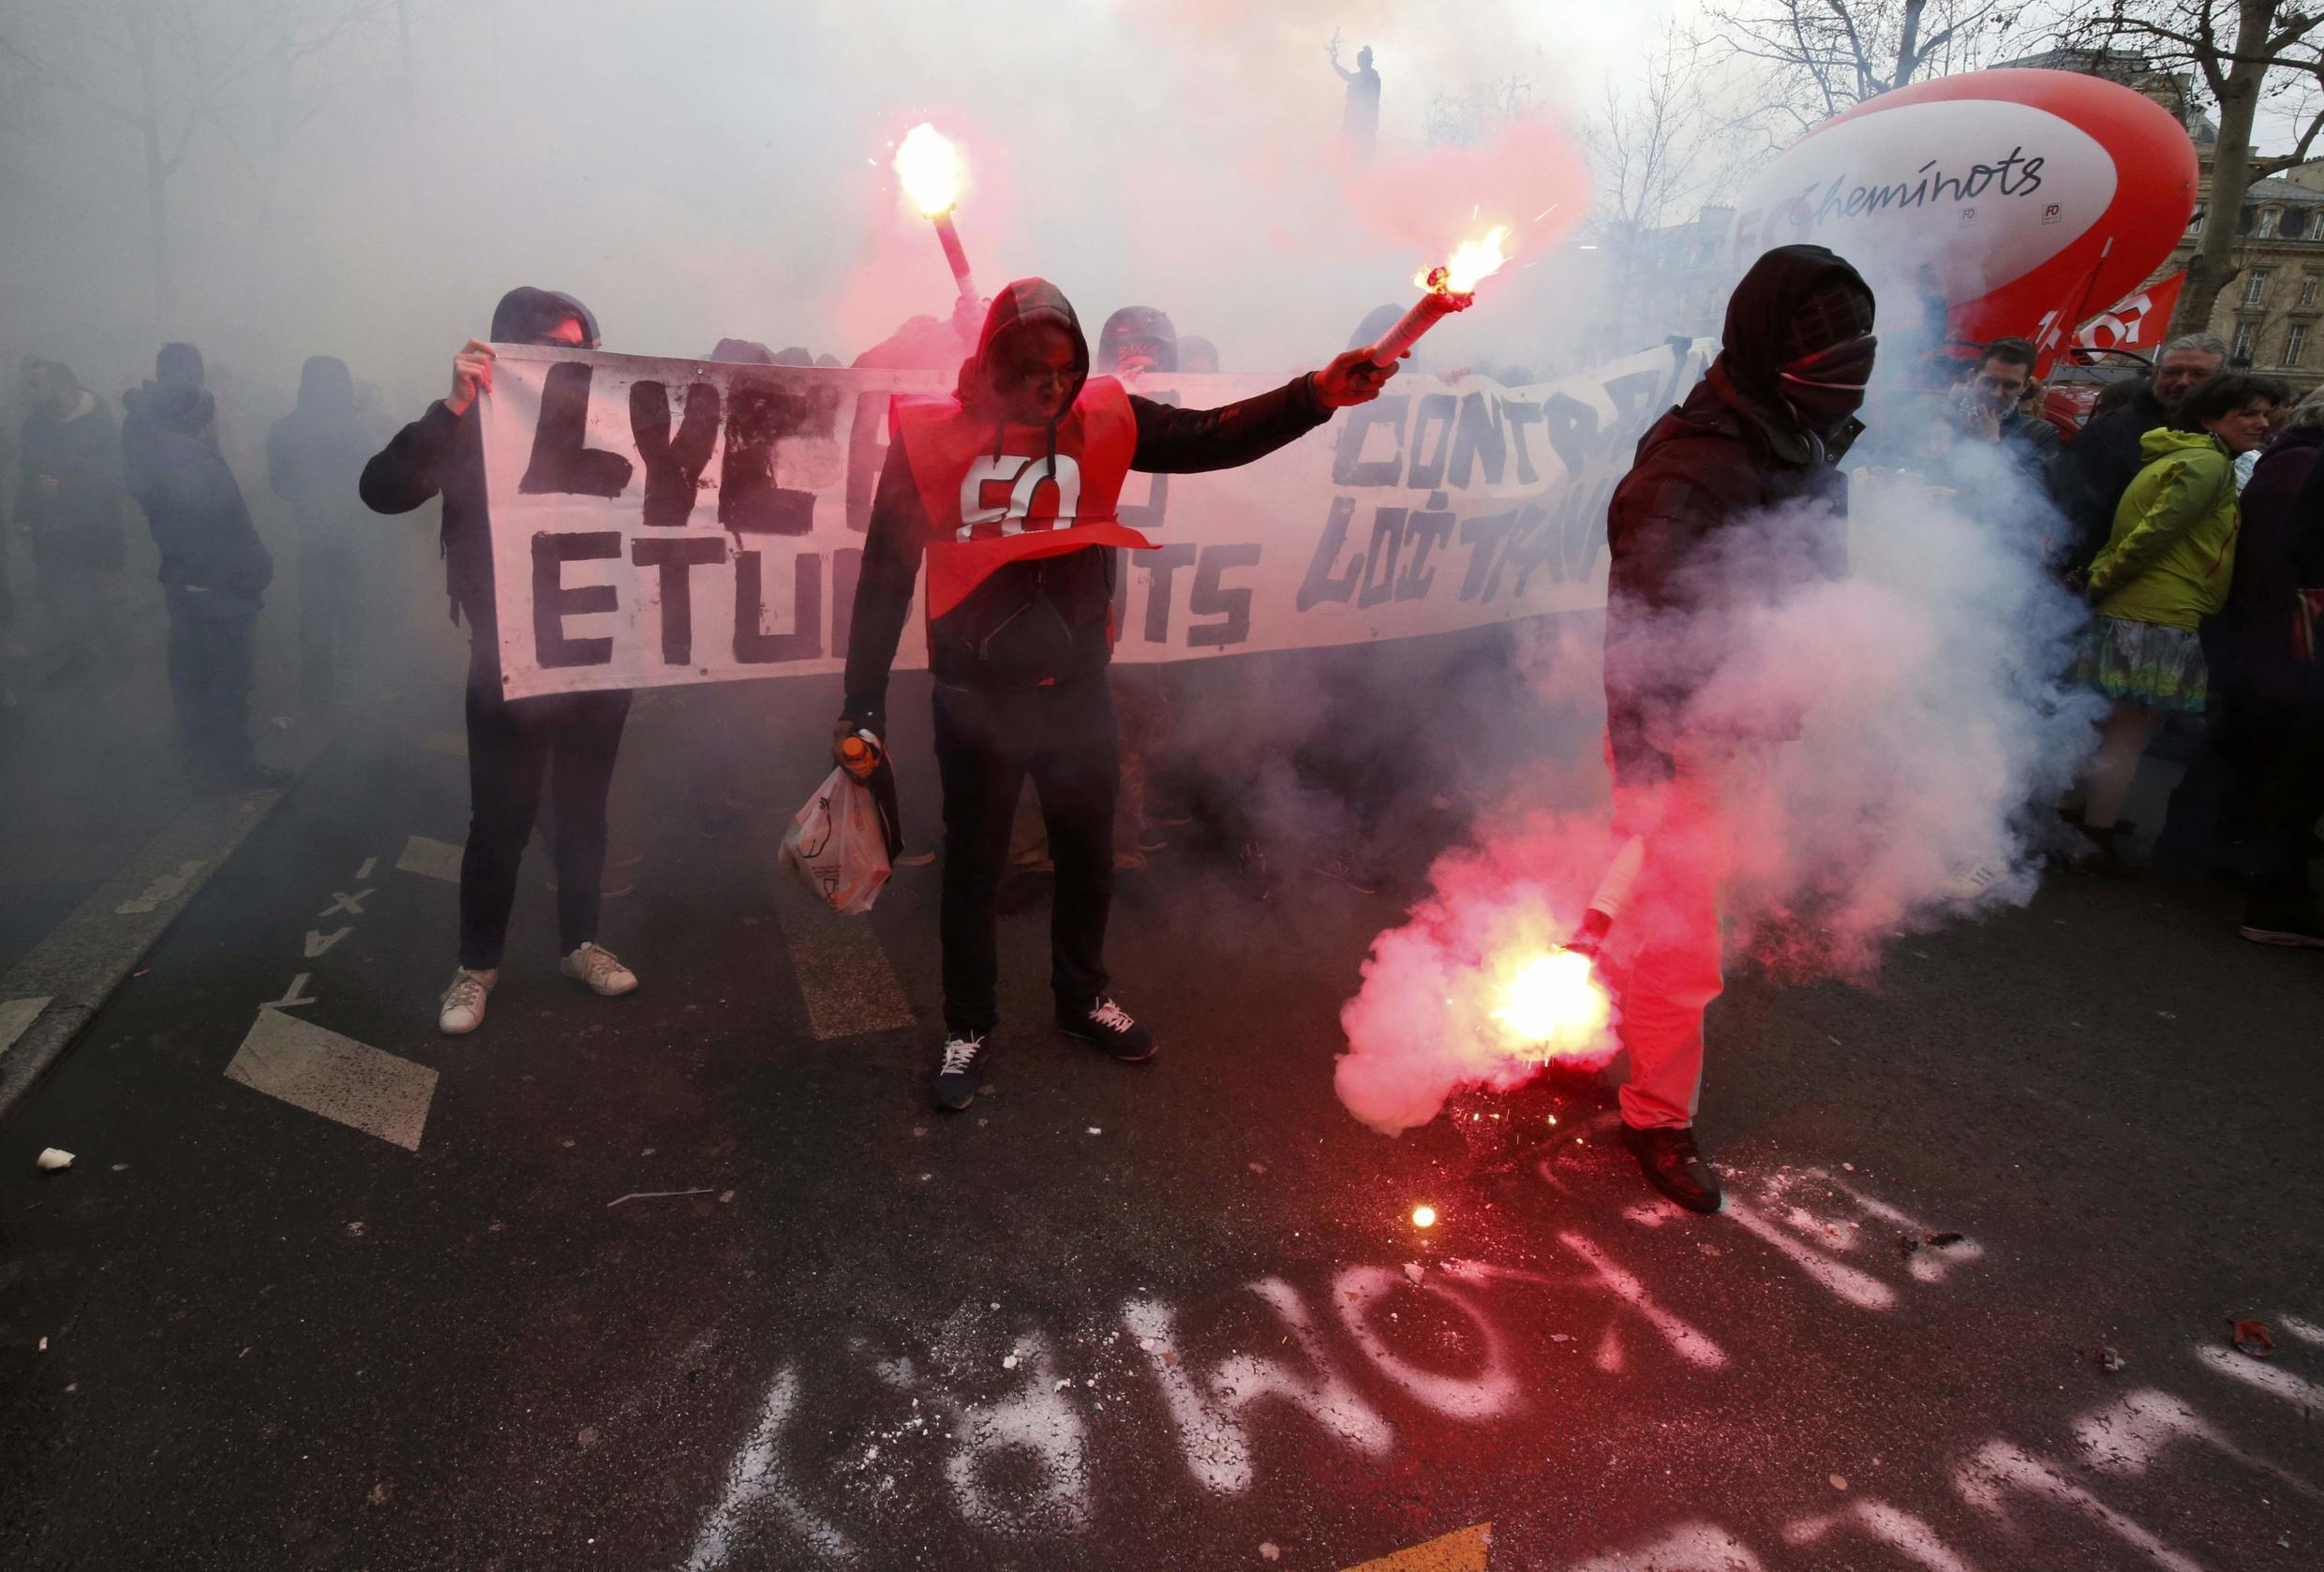 Students and school students join the protests against the labour bill in Paris on Wednesday